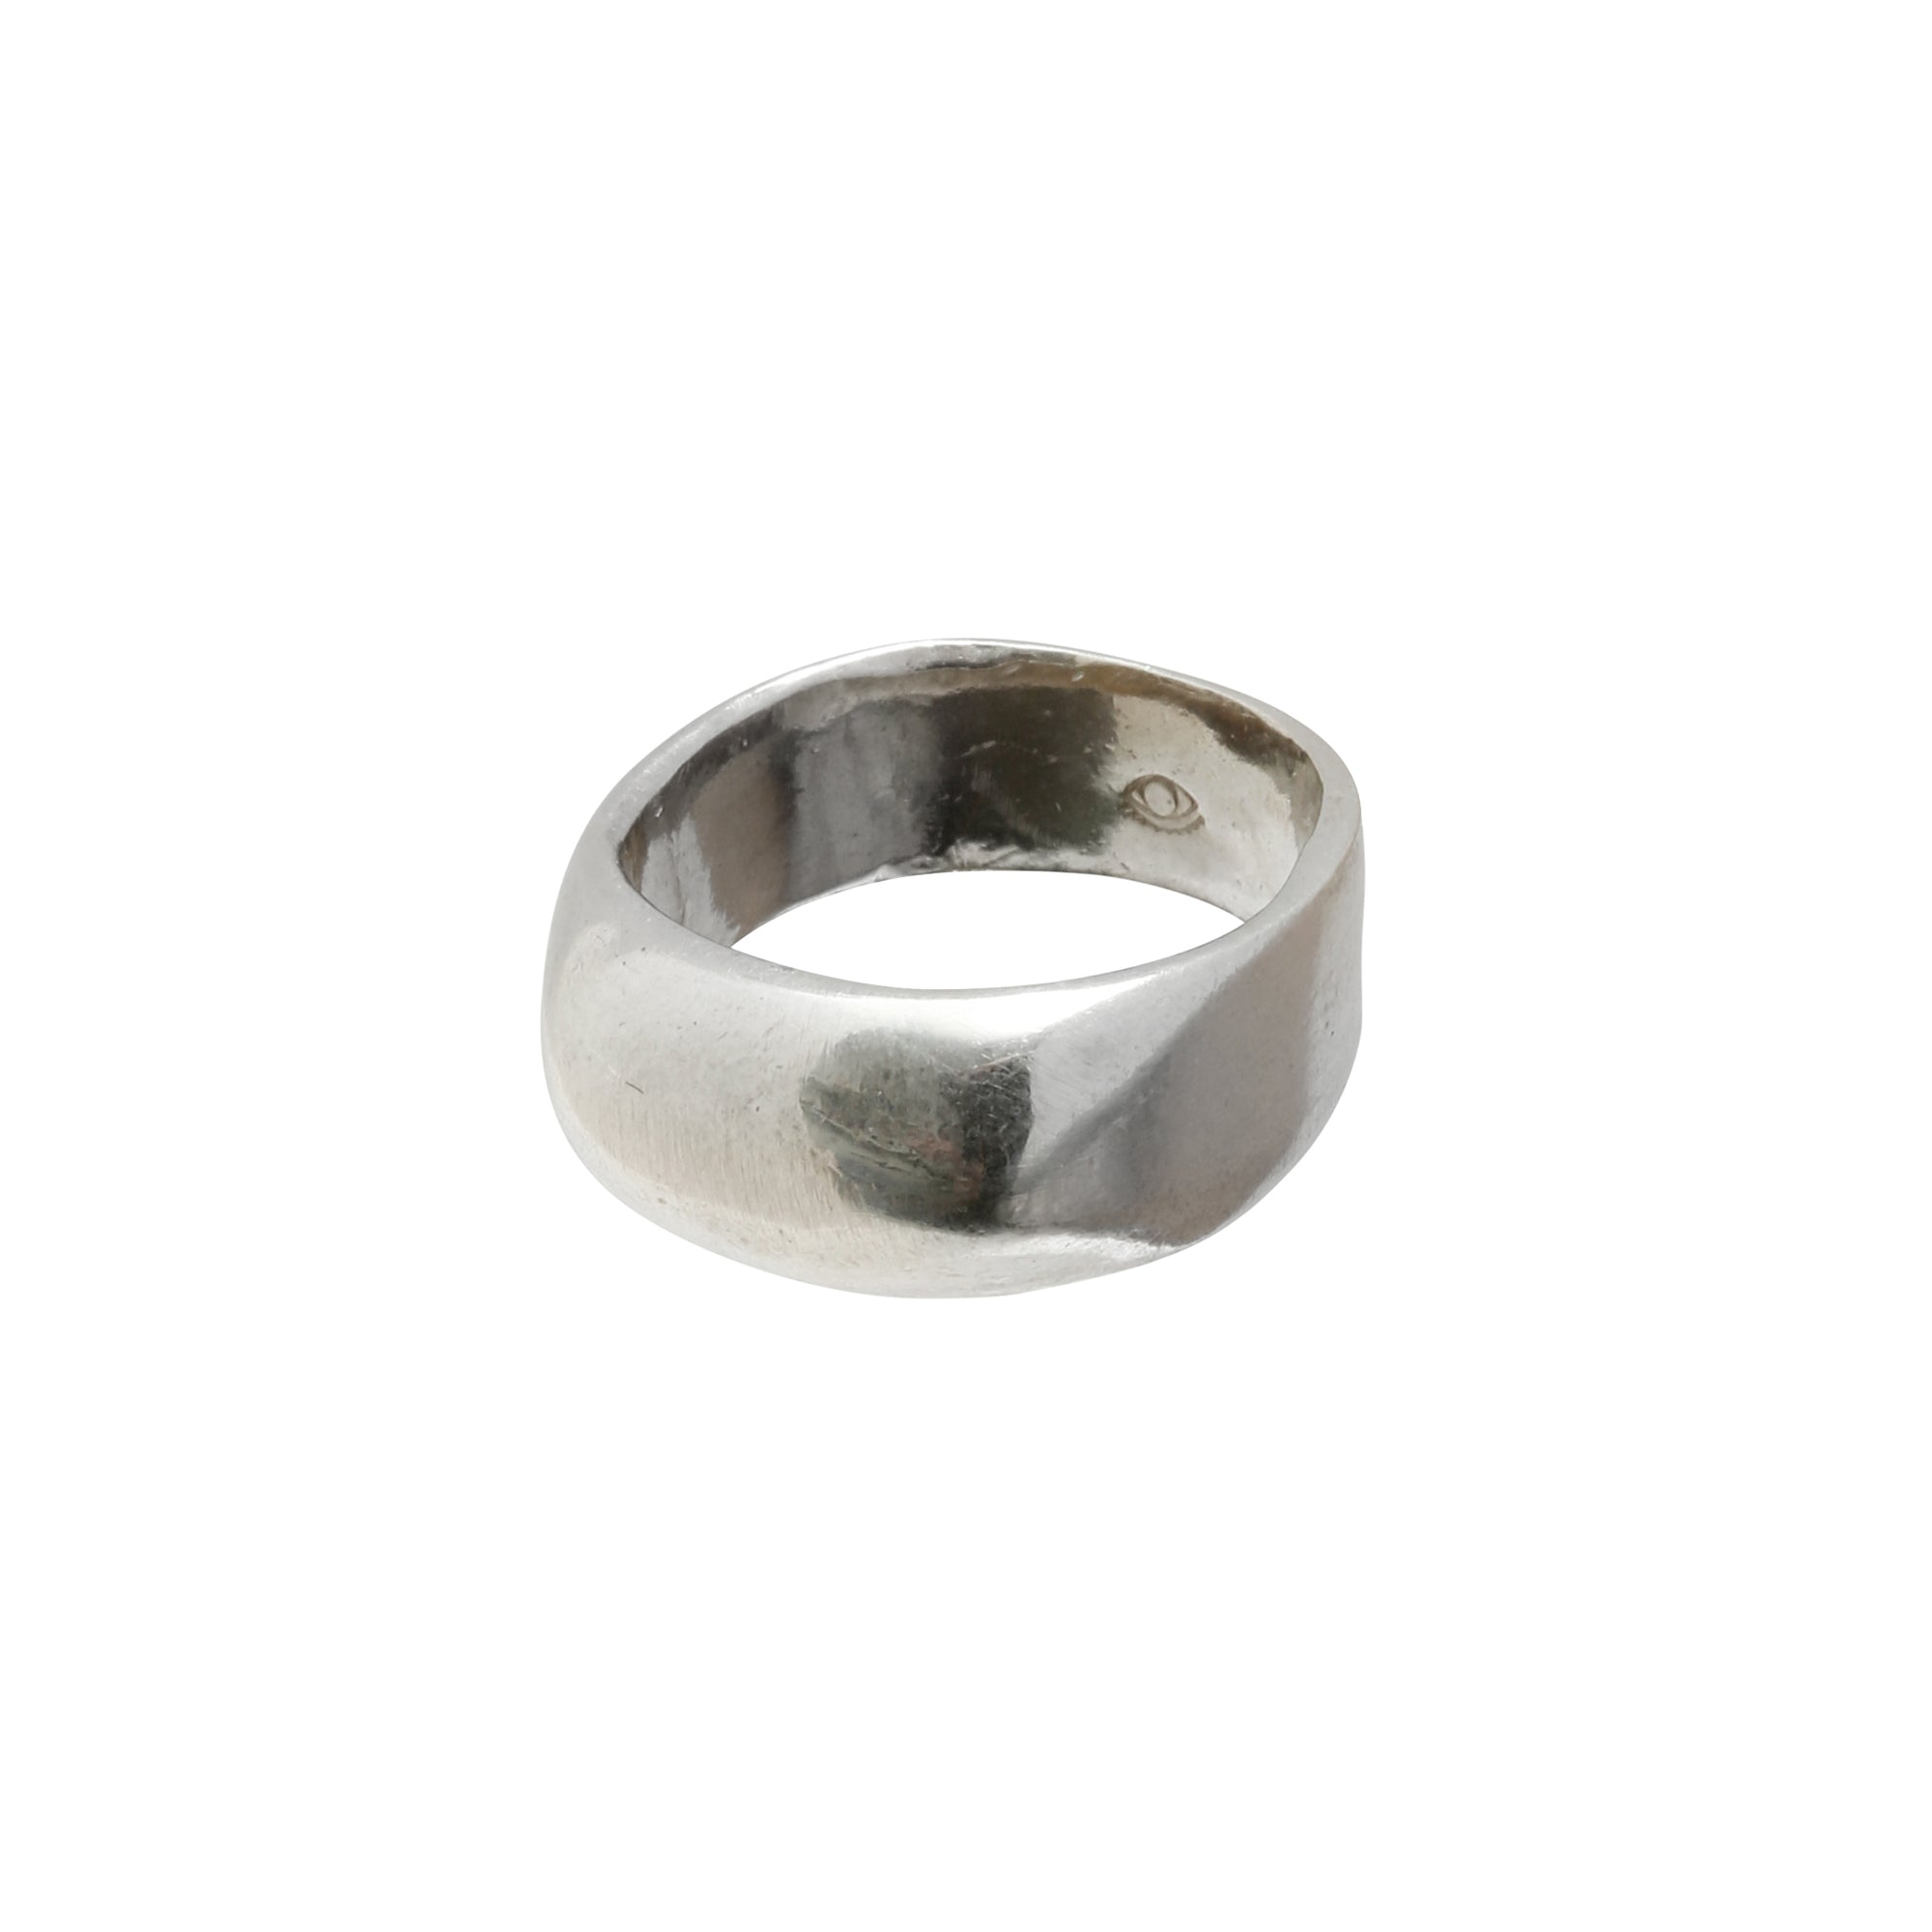 Silver Brass Maya Ring by Ariana Boussard-Reifel for Broken English Jewelry